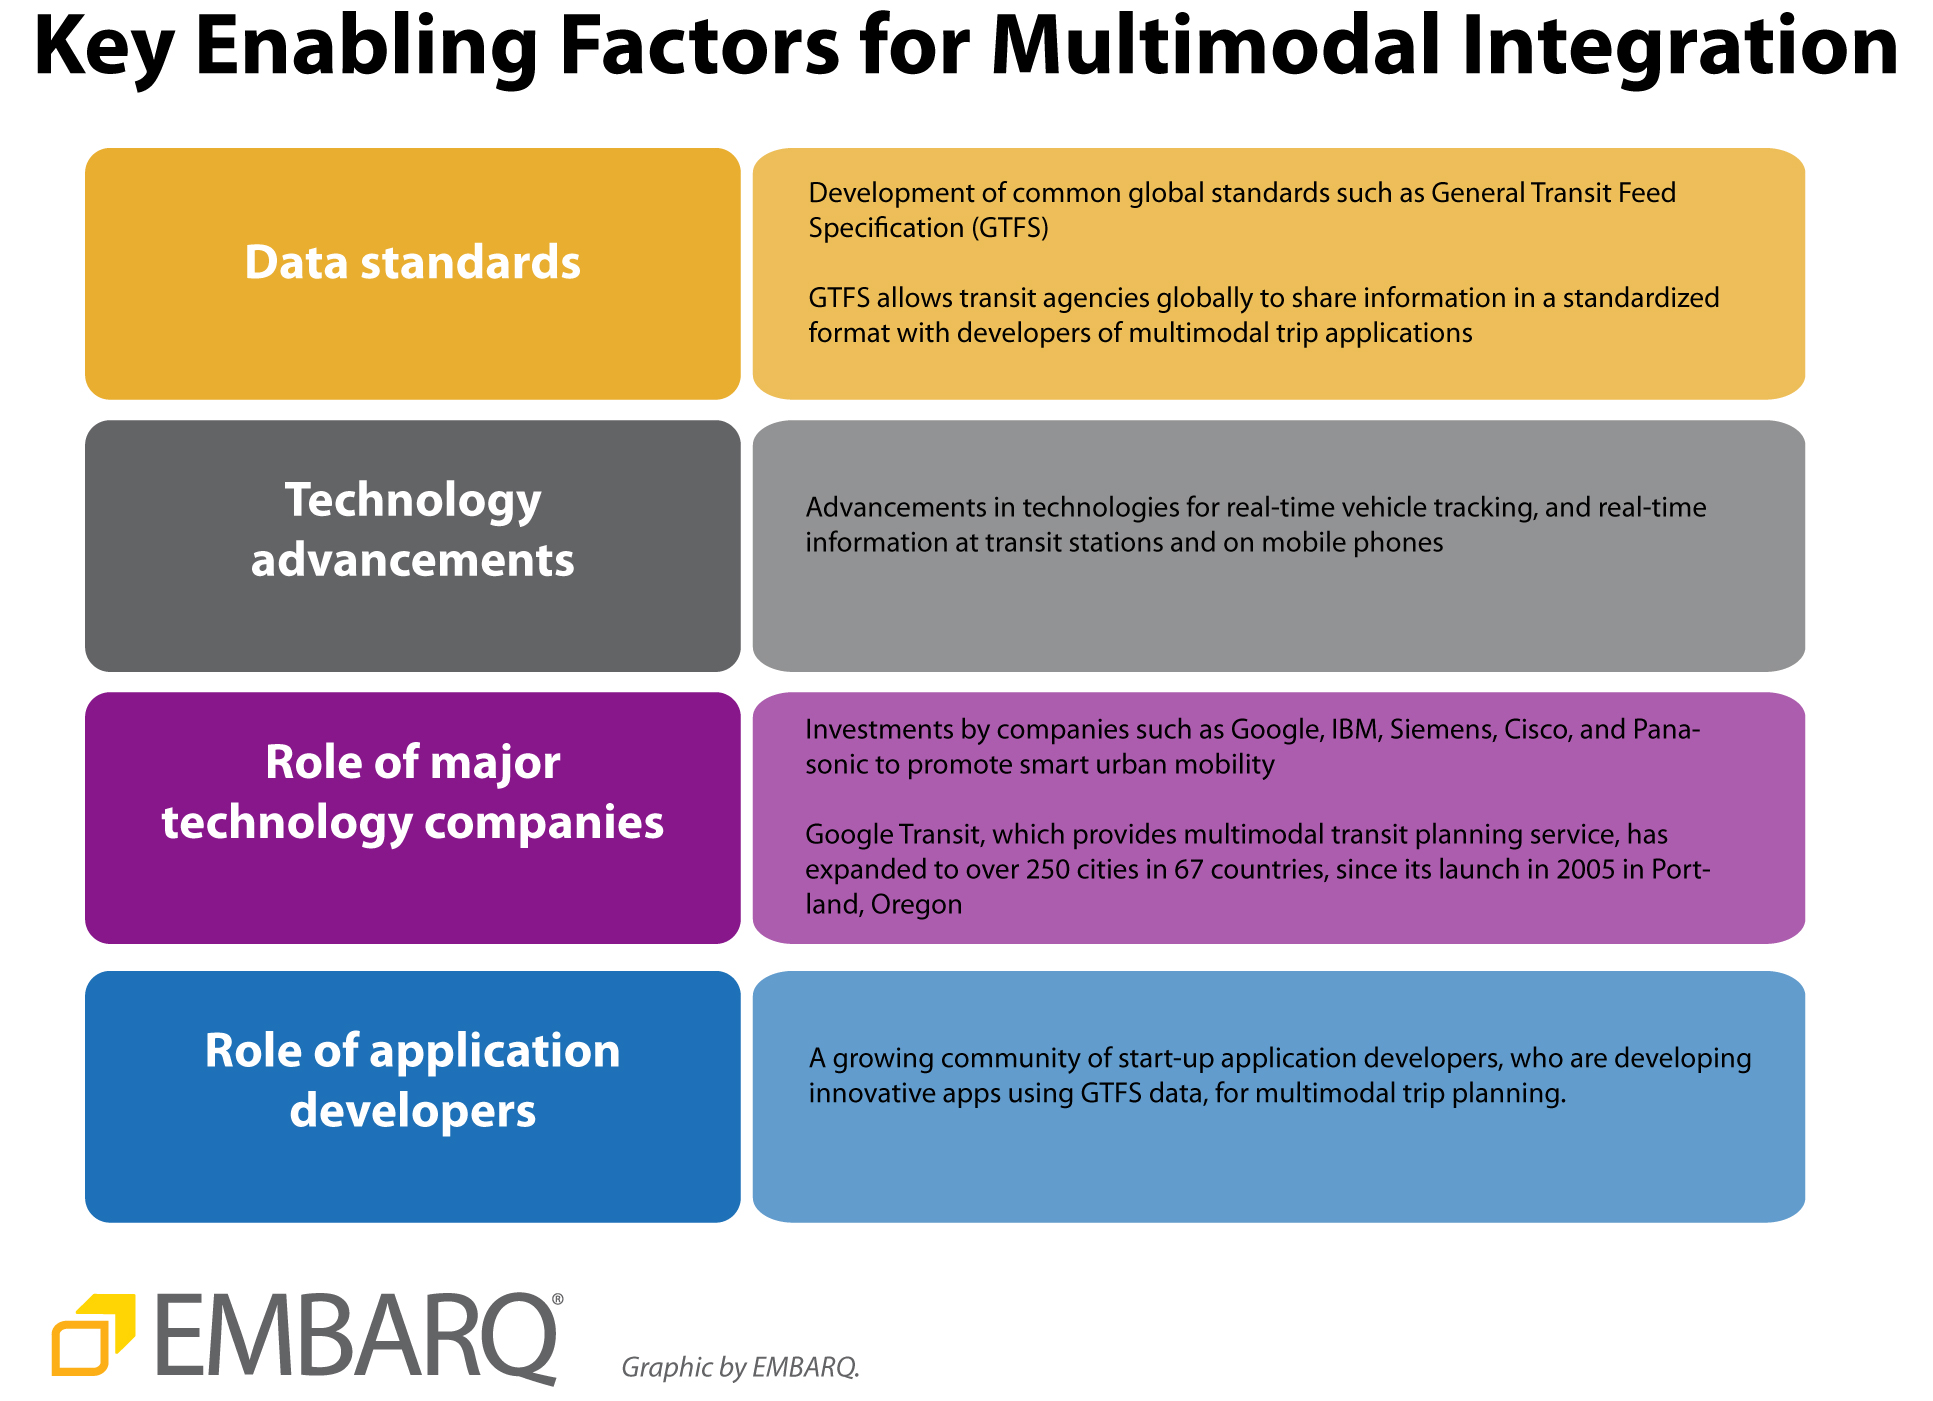 Key Enabling Factors for Multimodal Integration. Graphic by EMBARQ.